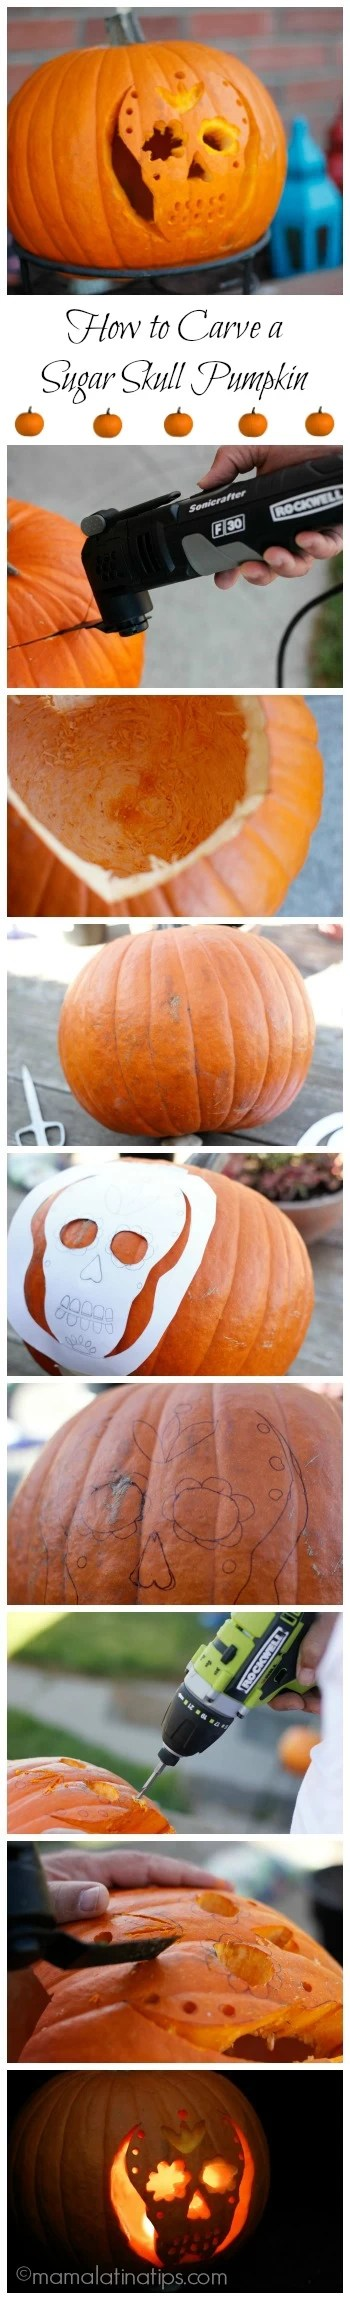 how to carve a sugar skull pumpkin mama latina tips